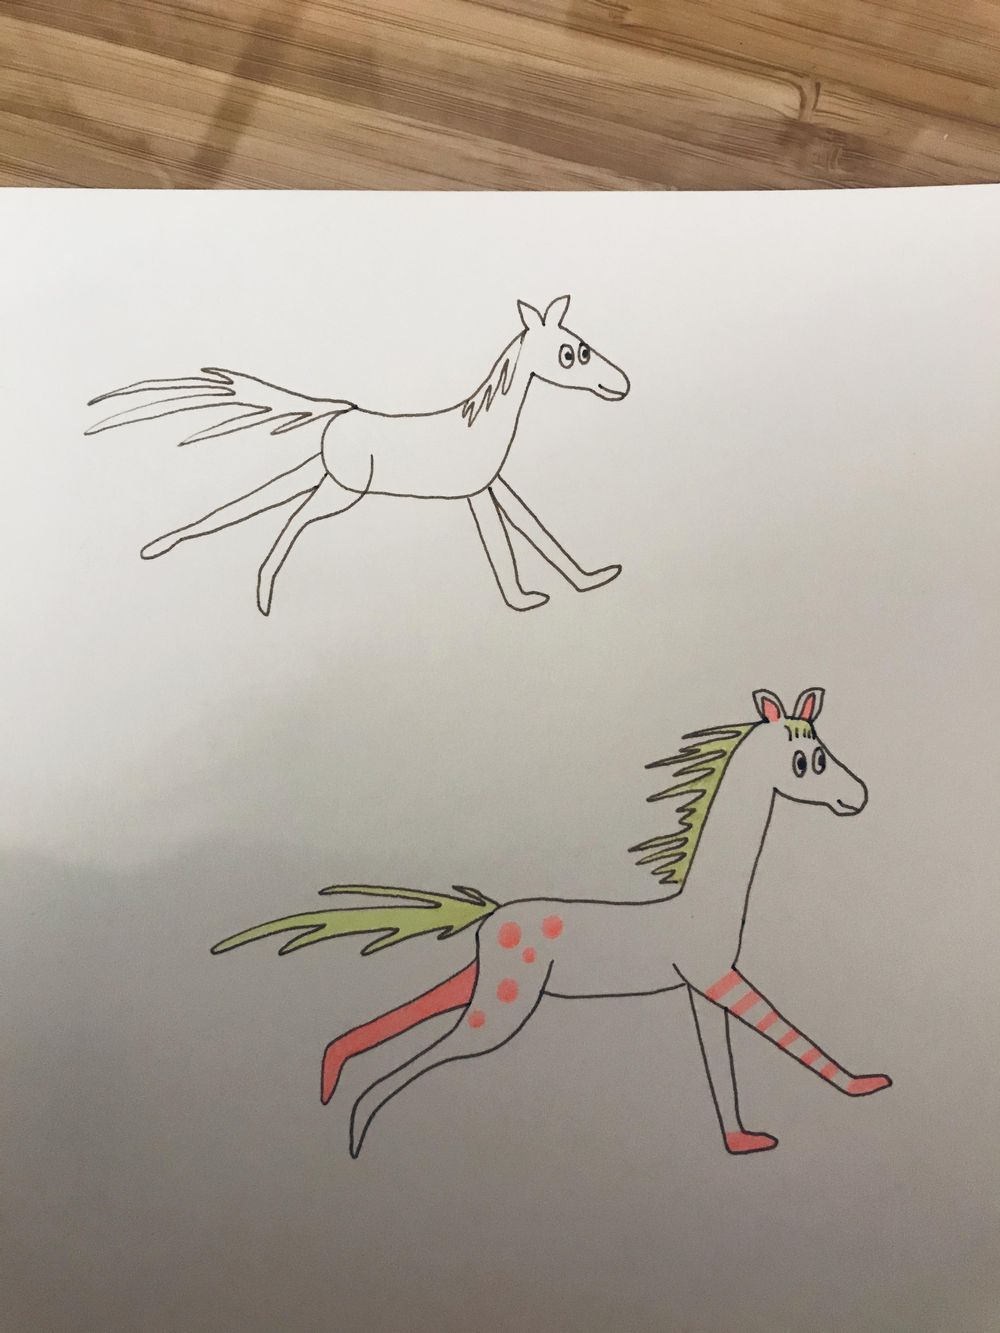 My horse - image 3 - student project